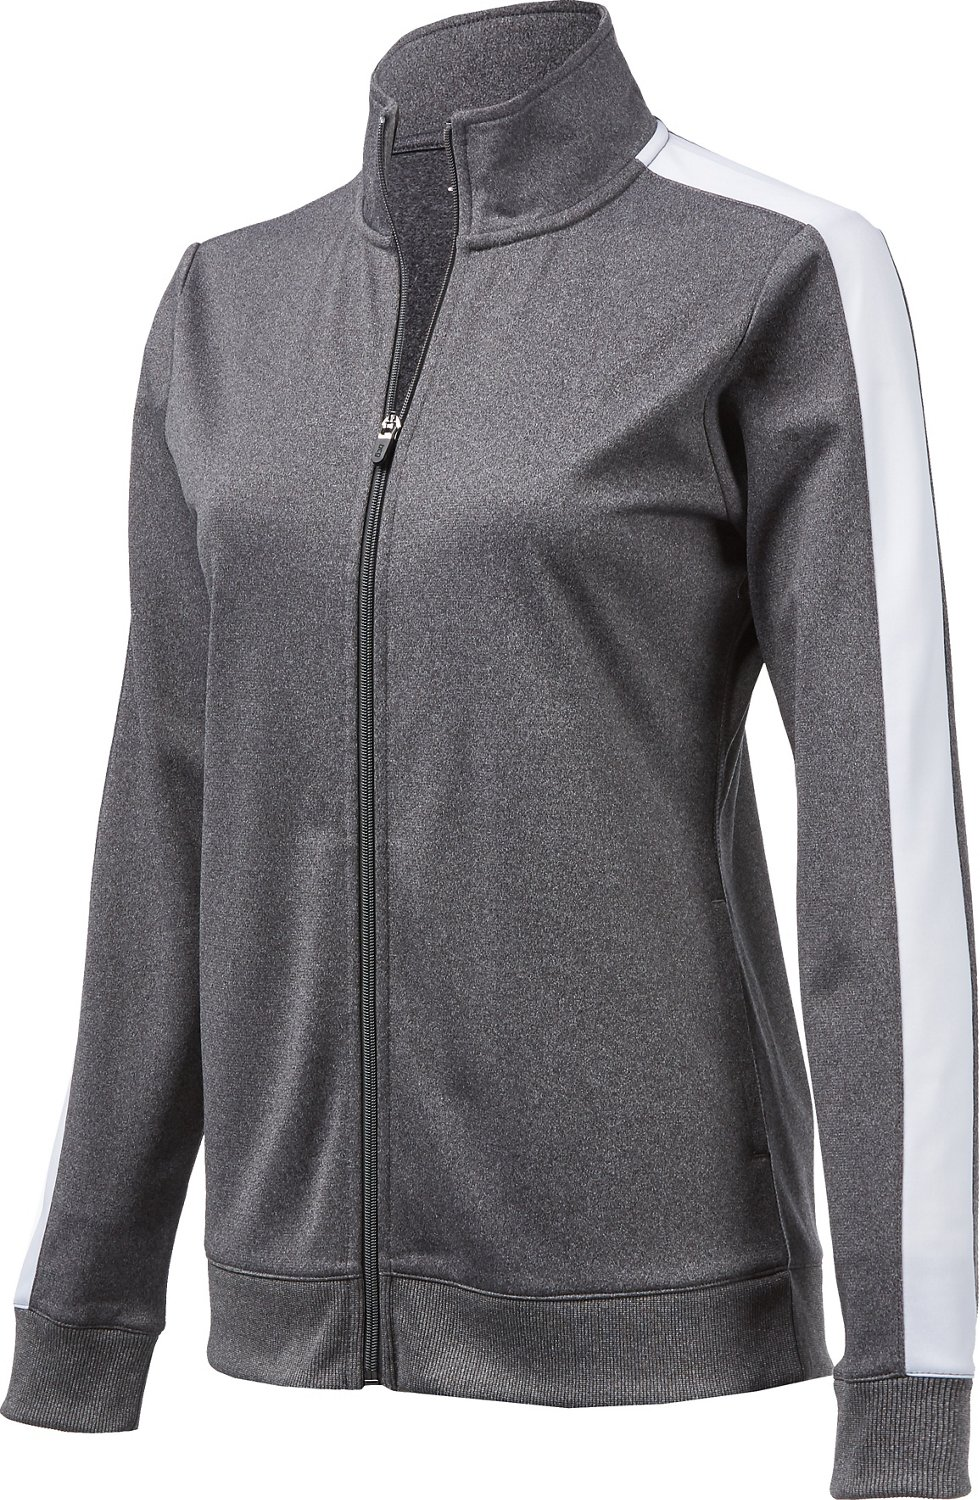 d9abe342d Display product reviews for BCG Women's Tricot Jacket